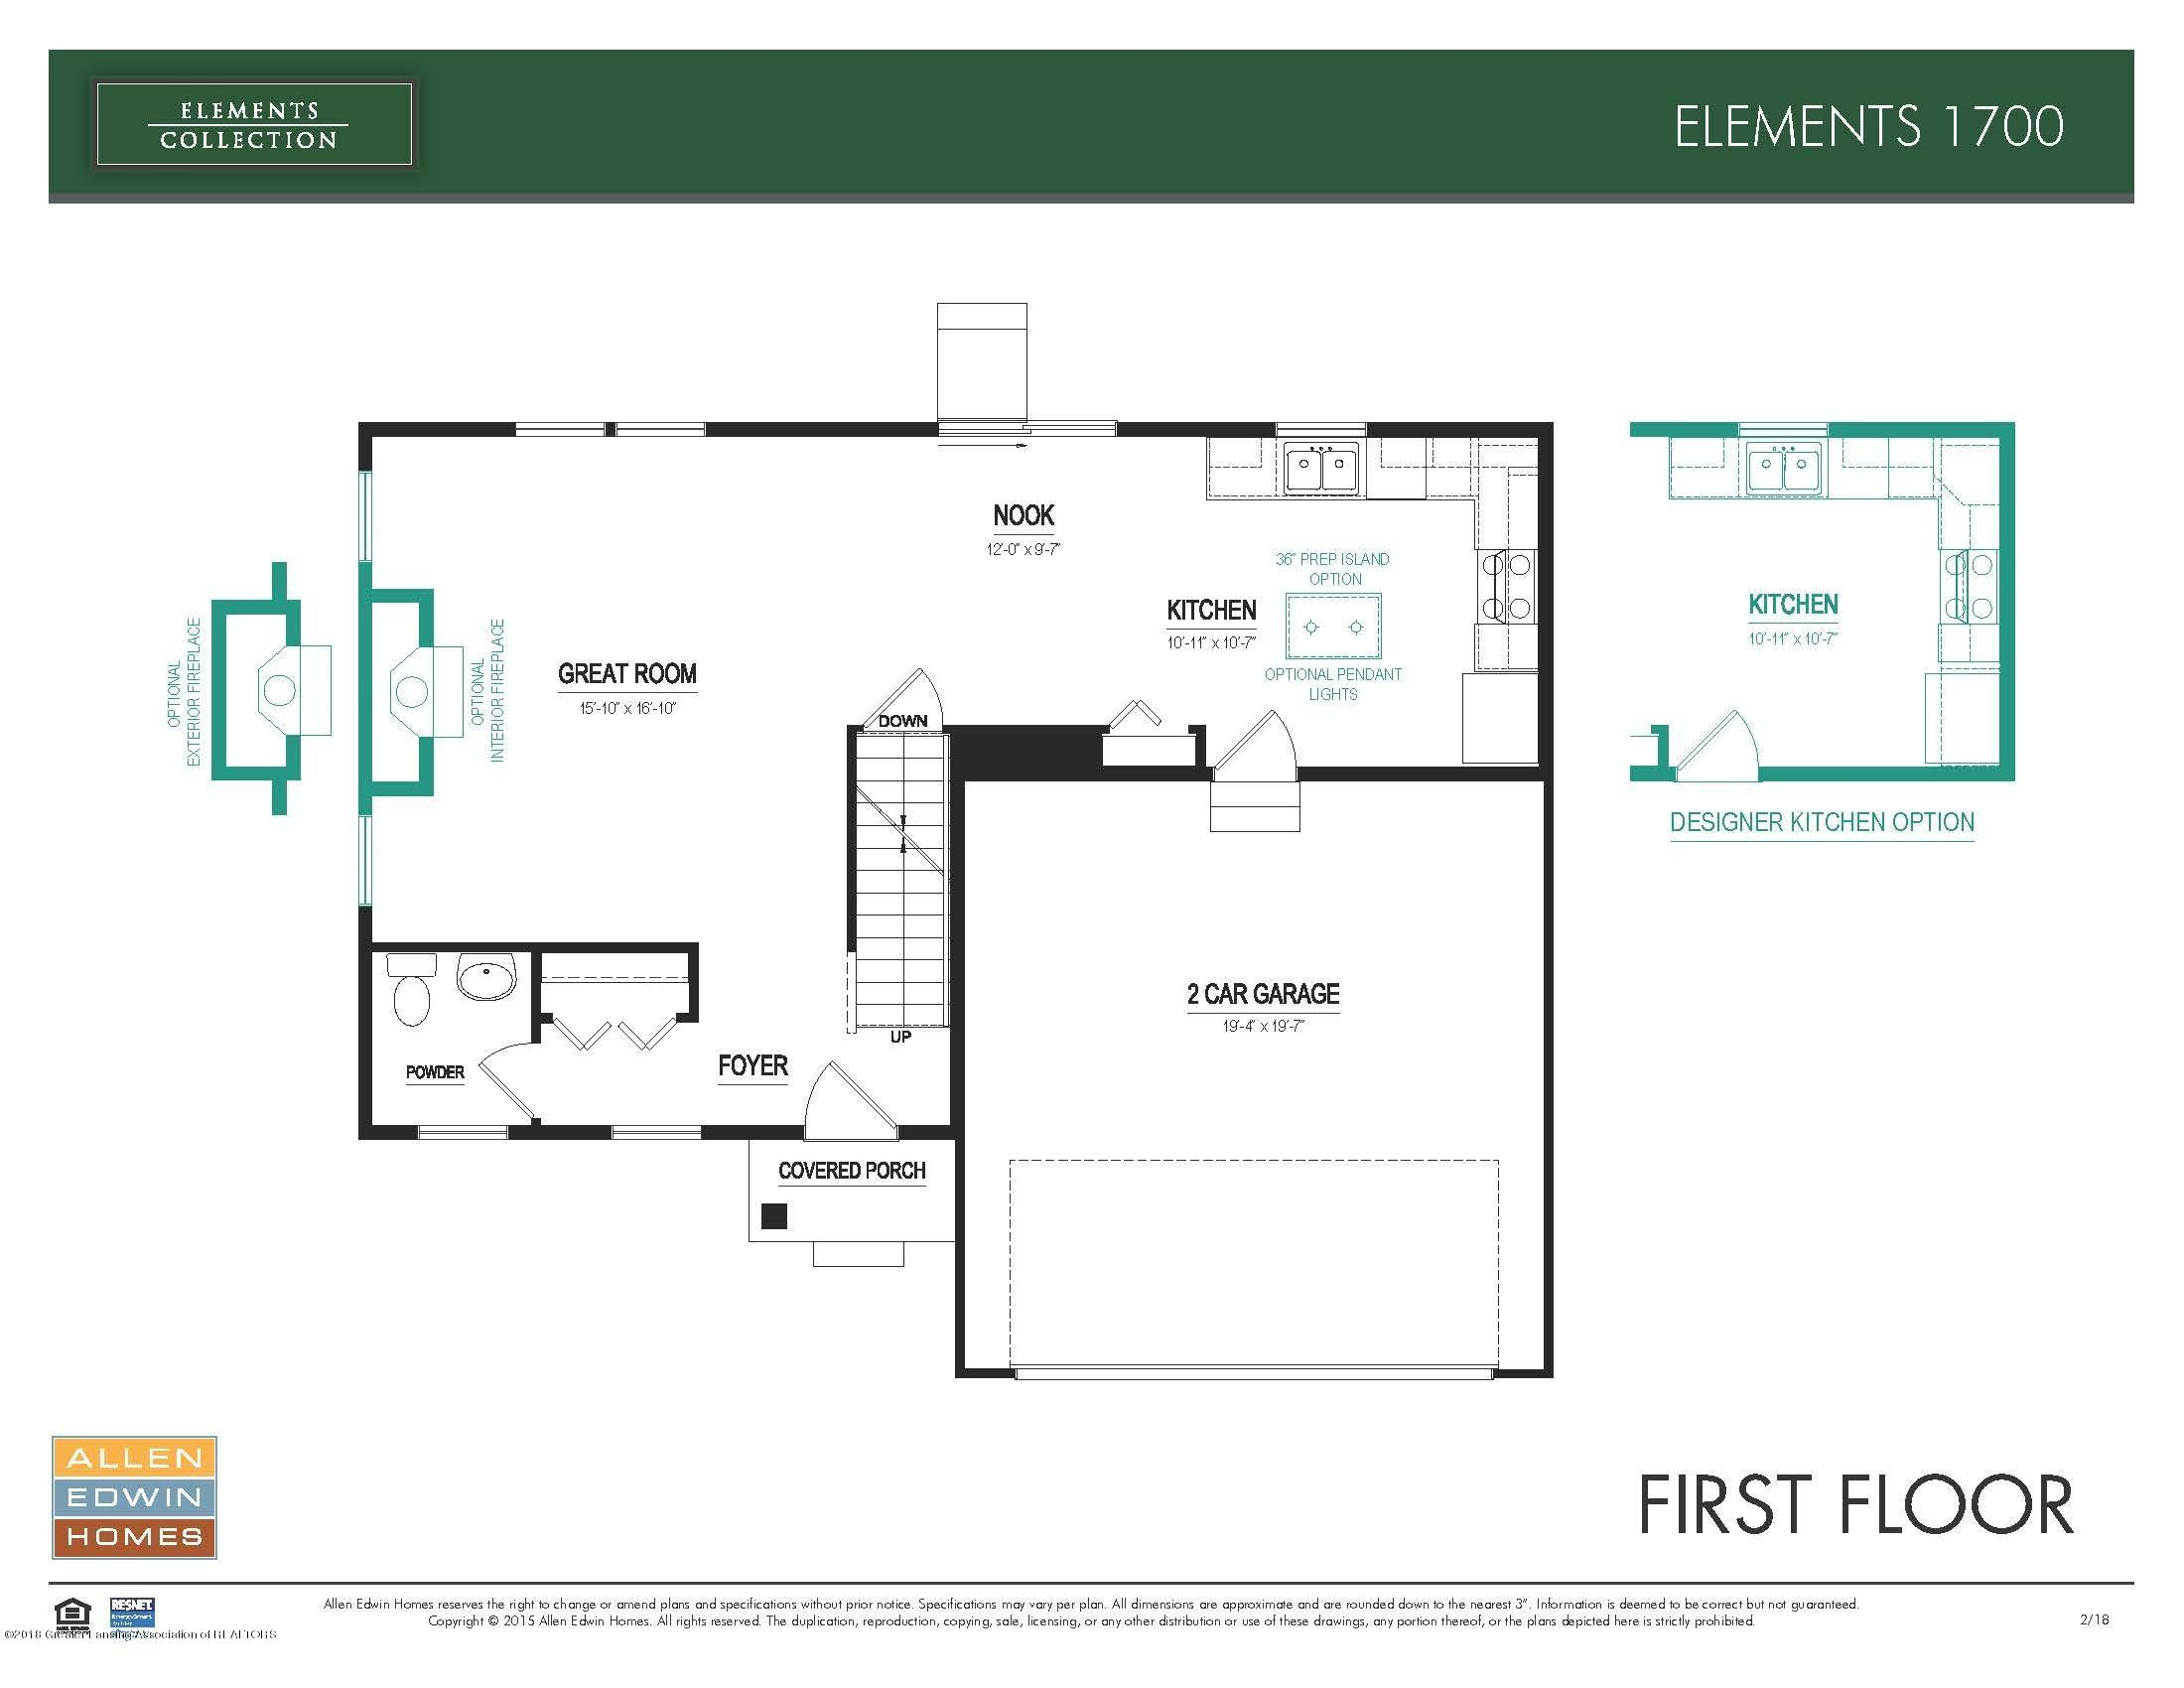 1883 Nightingale Dr - Elements 1700 V7.0b First Floor - 15